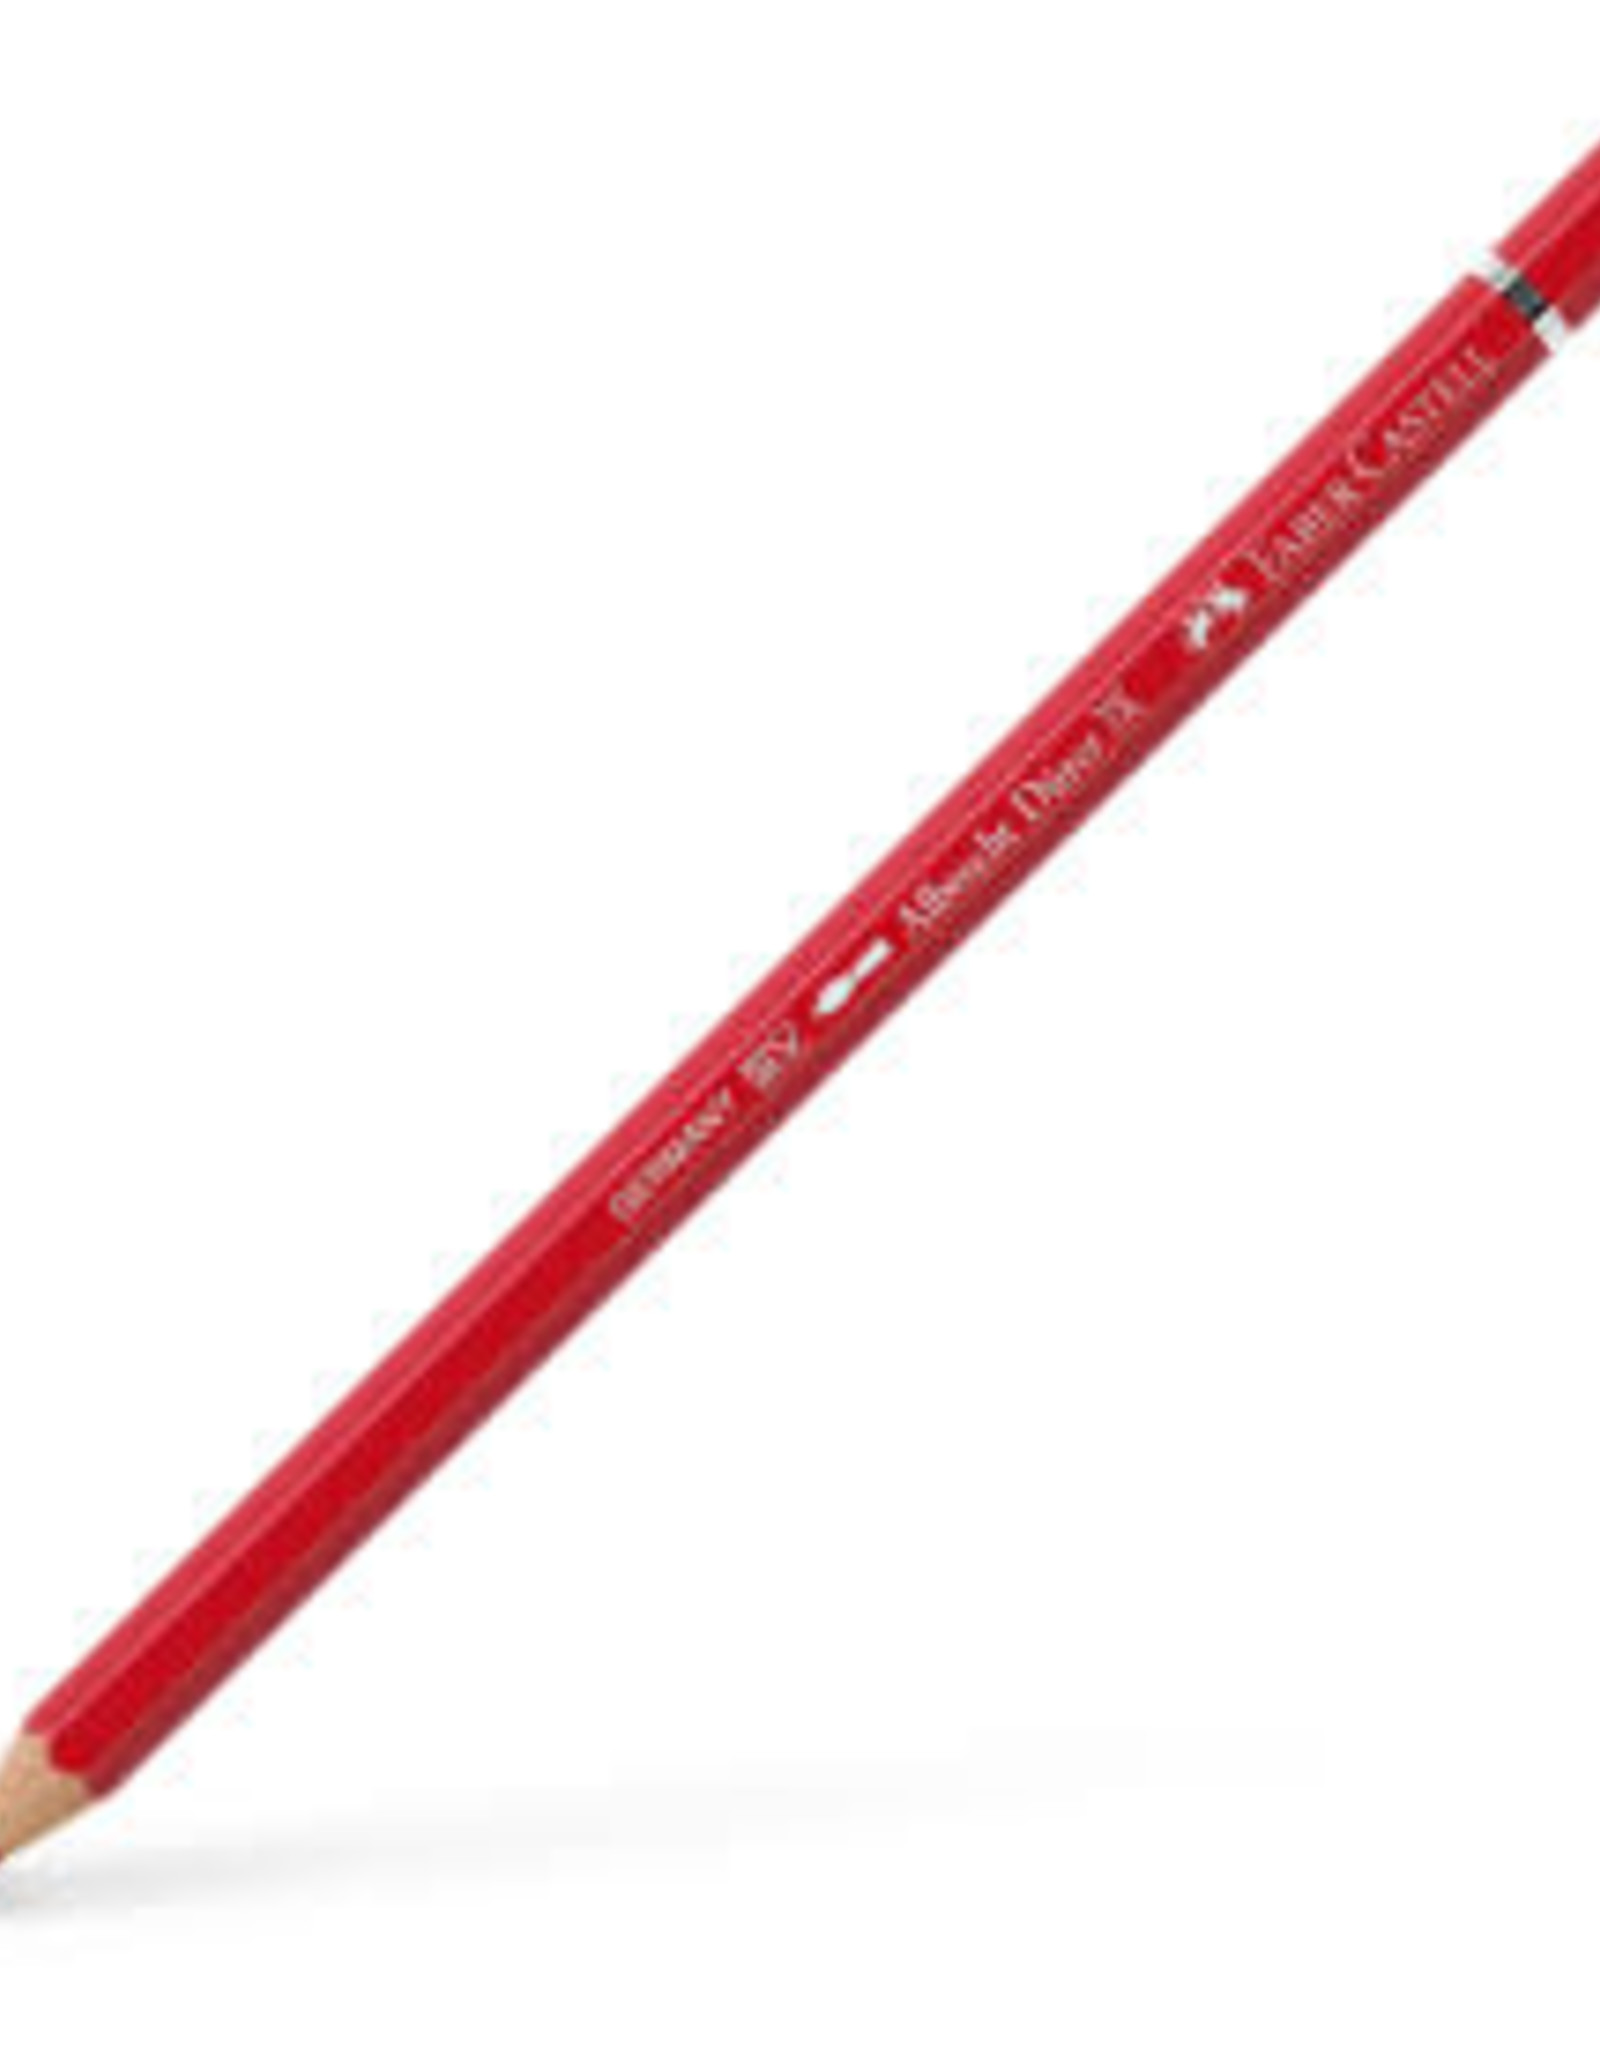 FABER-CASTELL Albrecht Durer Watercolor Pencil 219 Deep Scarlet Red